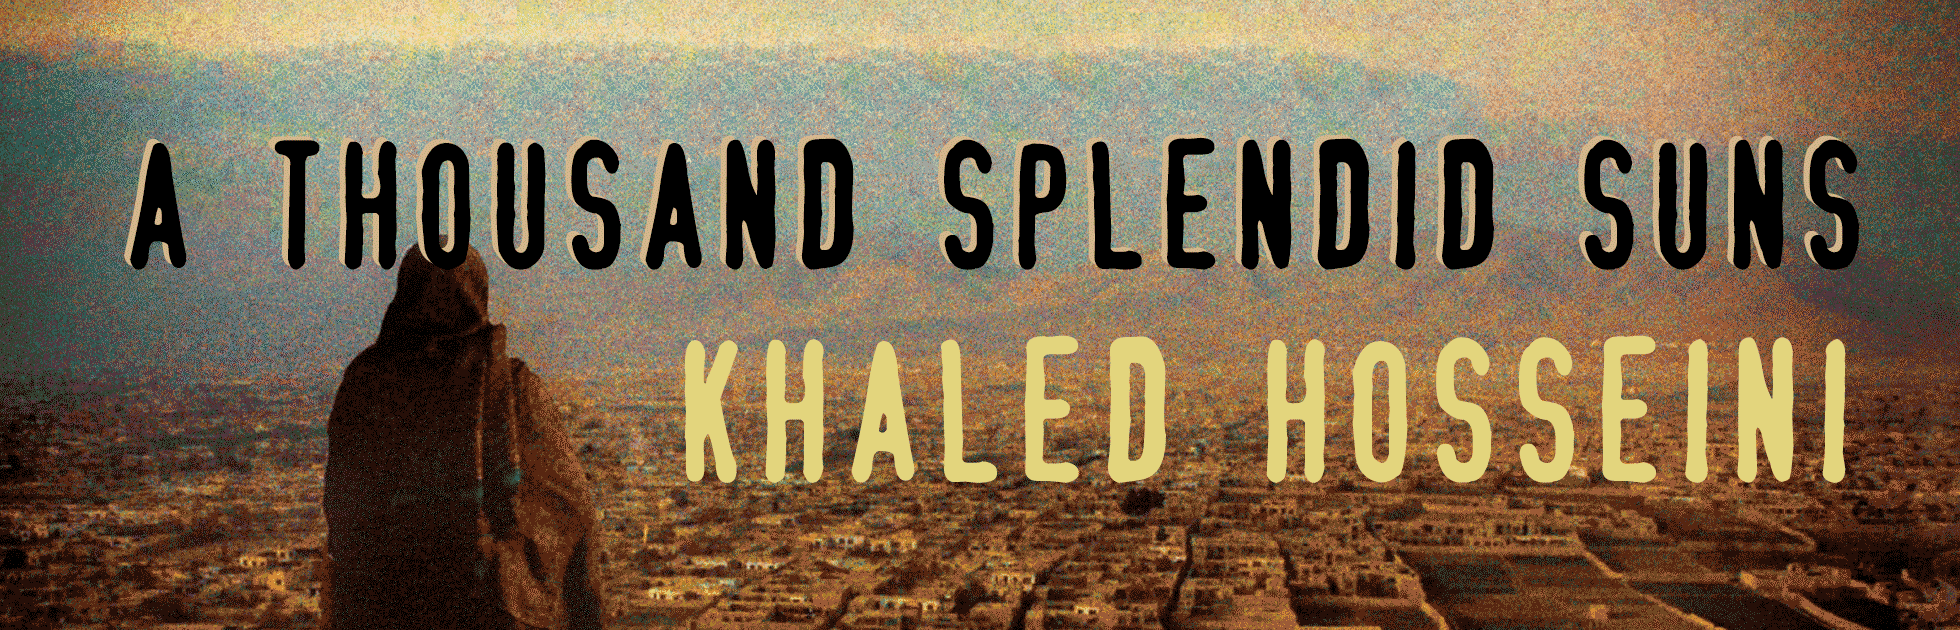 a review of khalid hosseinis a thousand splendid suns A thousand splendid suns review: a soul-stirring novel by khaled hosseini that takes into account the thirty year painful afghan history with a blend of paradise that love brings in our lives.